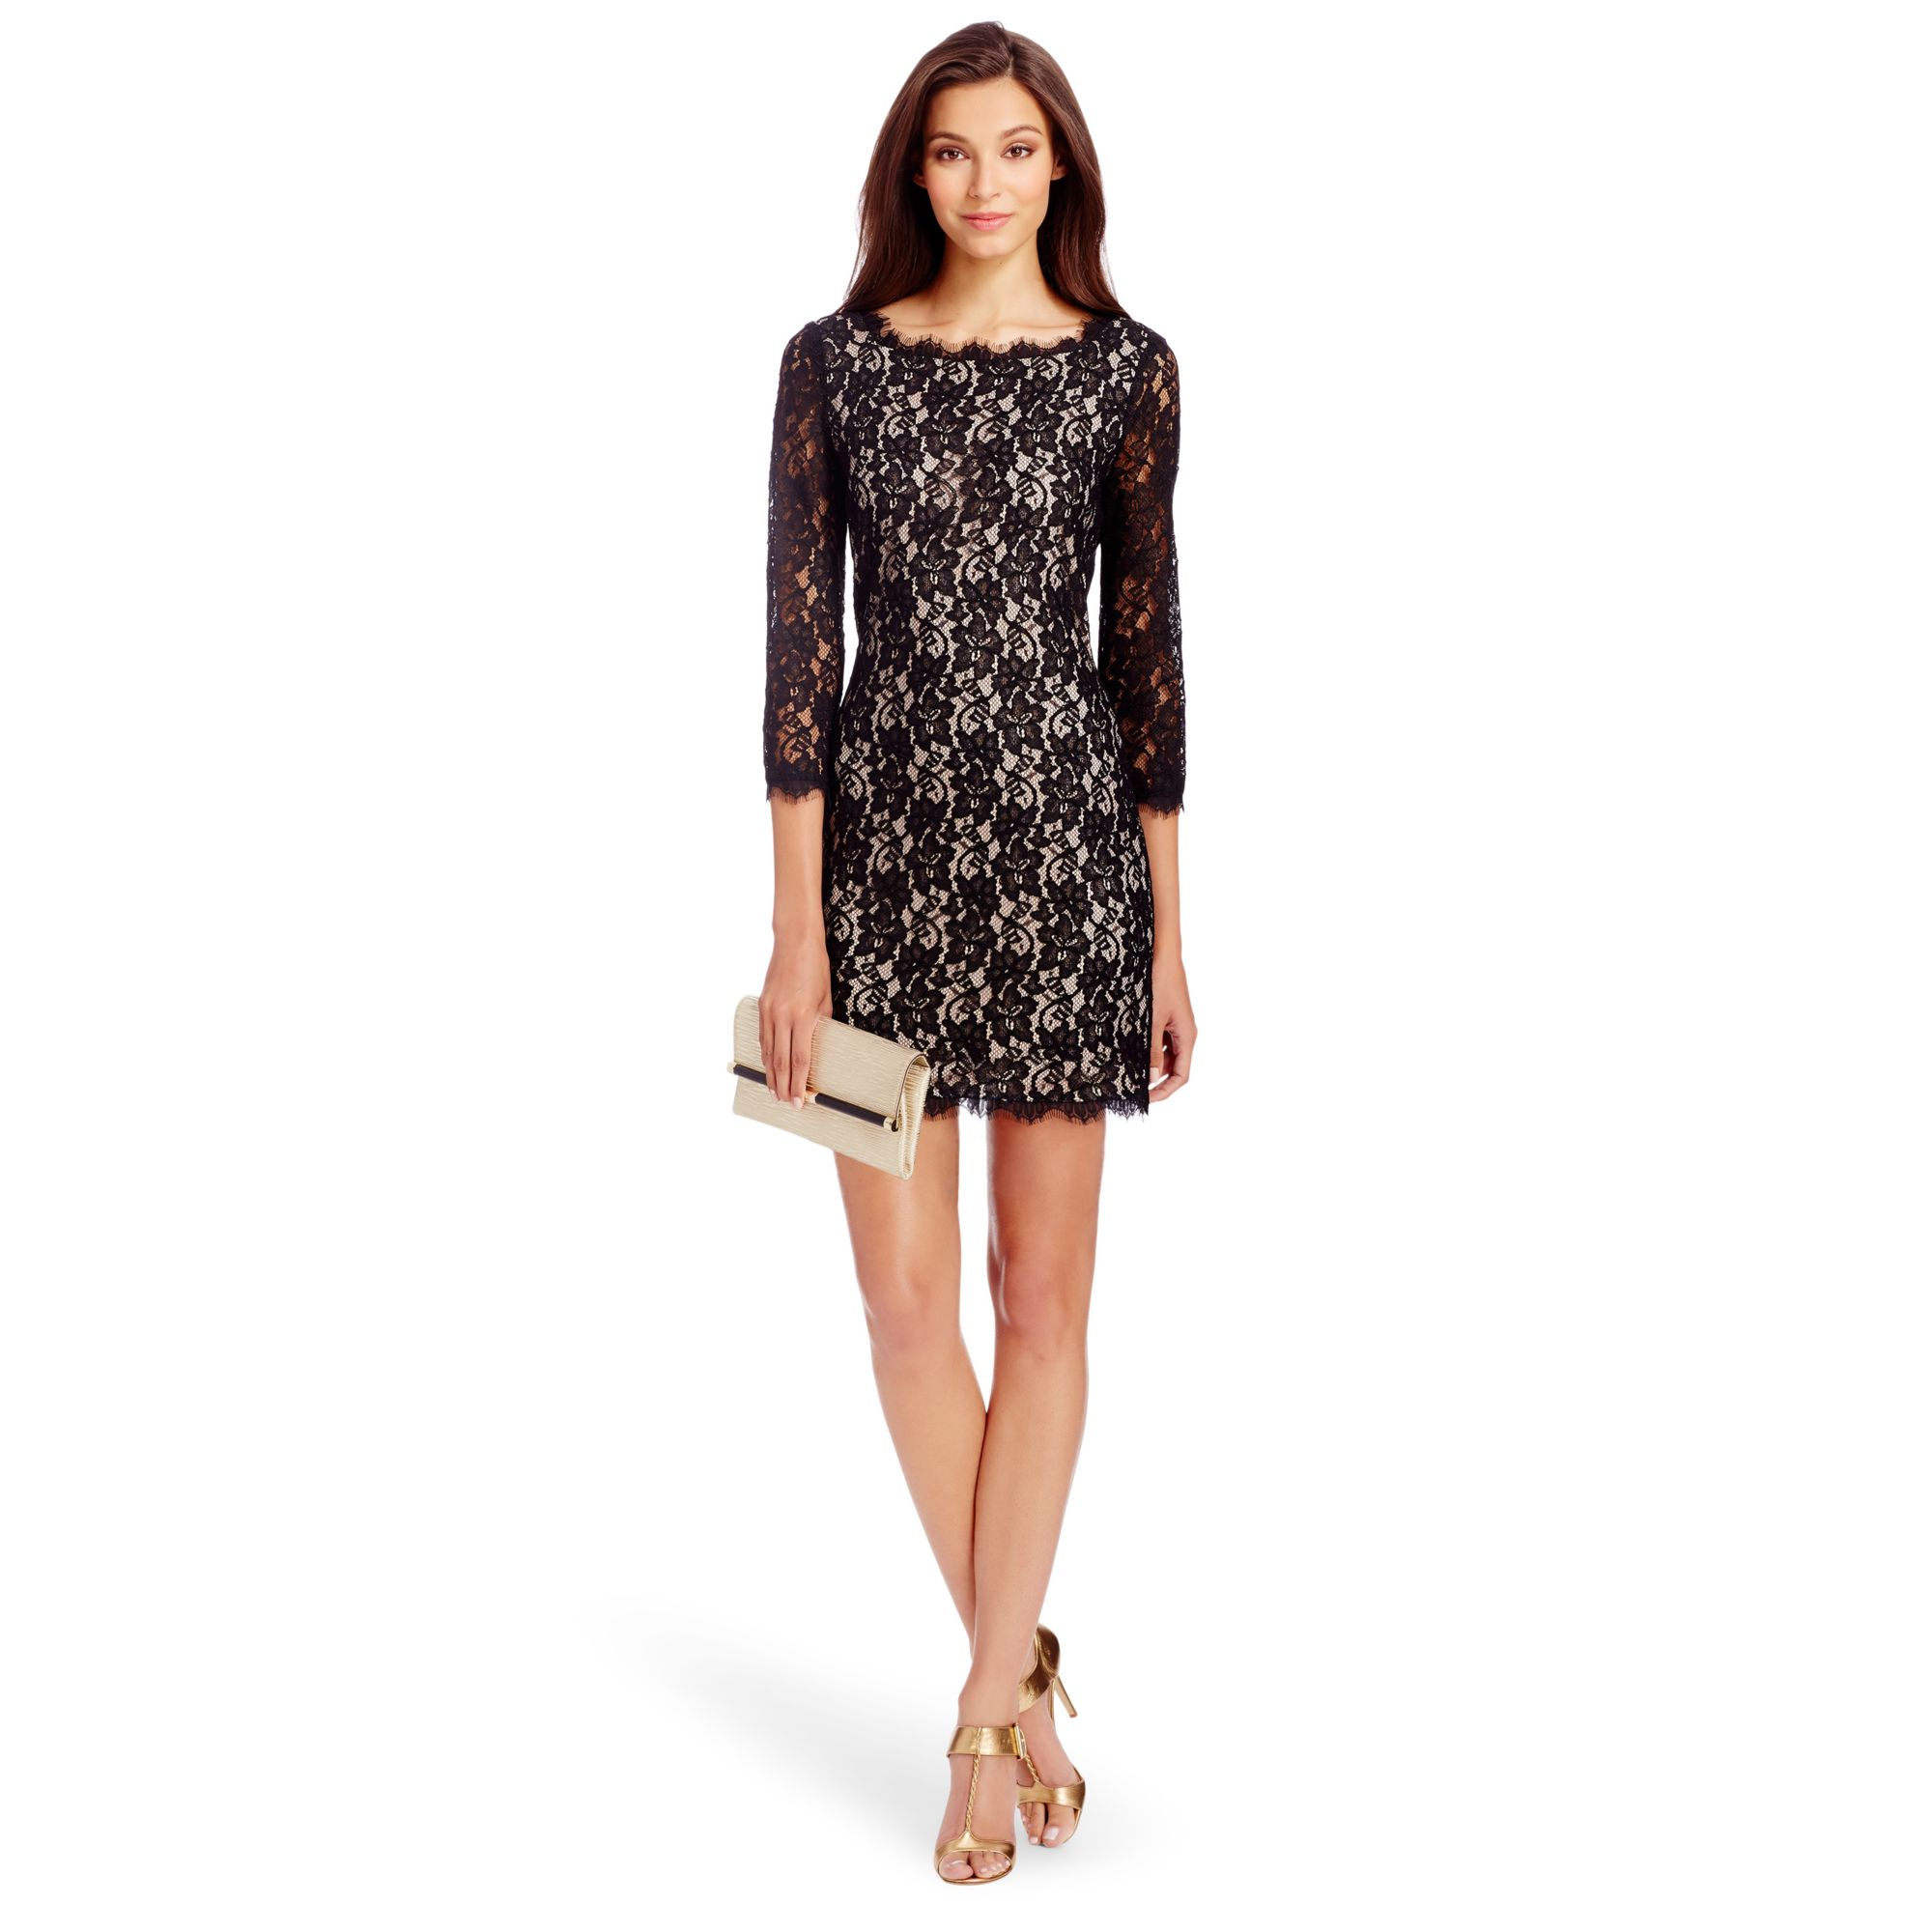 Diane von furstenberg zarita lace dress in black lyst for Diane von furstenberg clothes